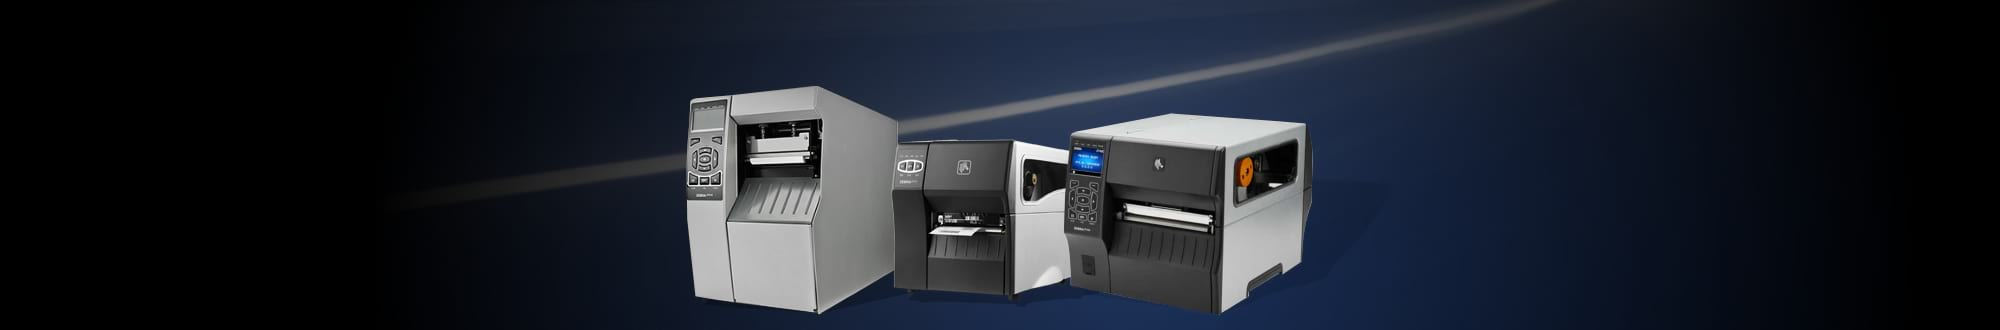 Desktop Printers | IT and Consulting in Maryland | Adsofun